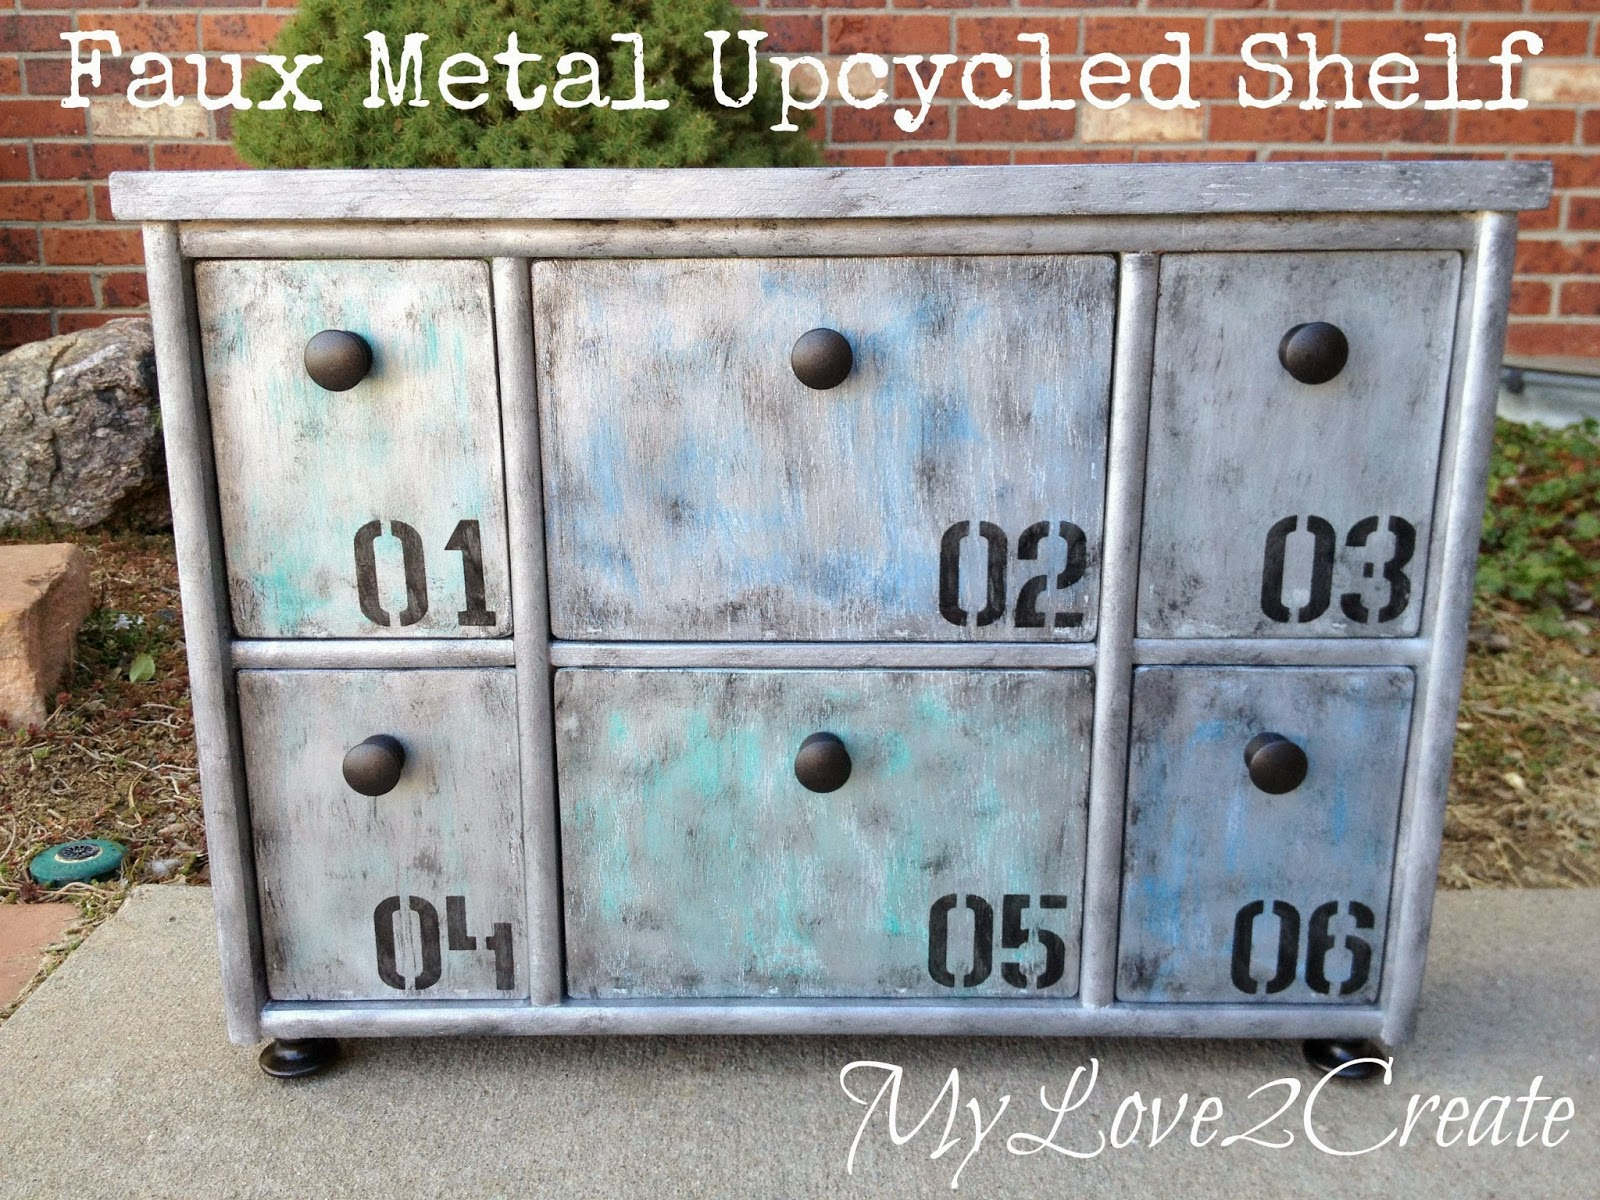 Faux Metal Upcycled Shelf after